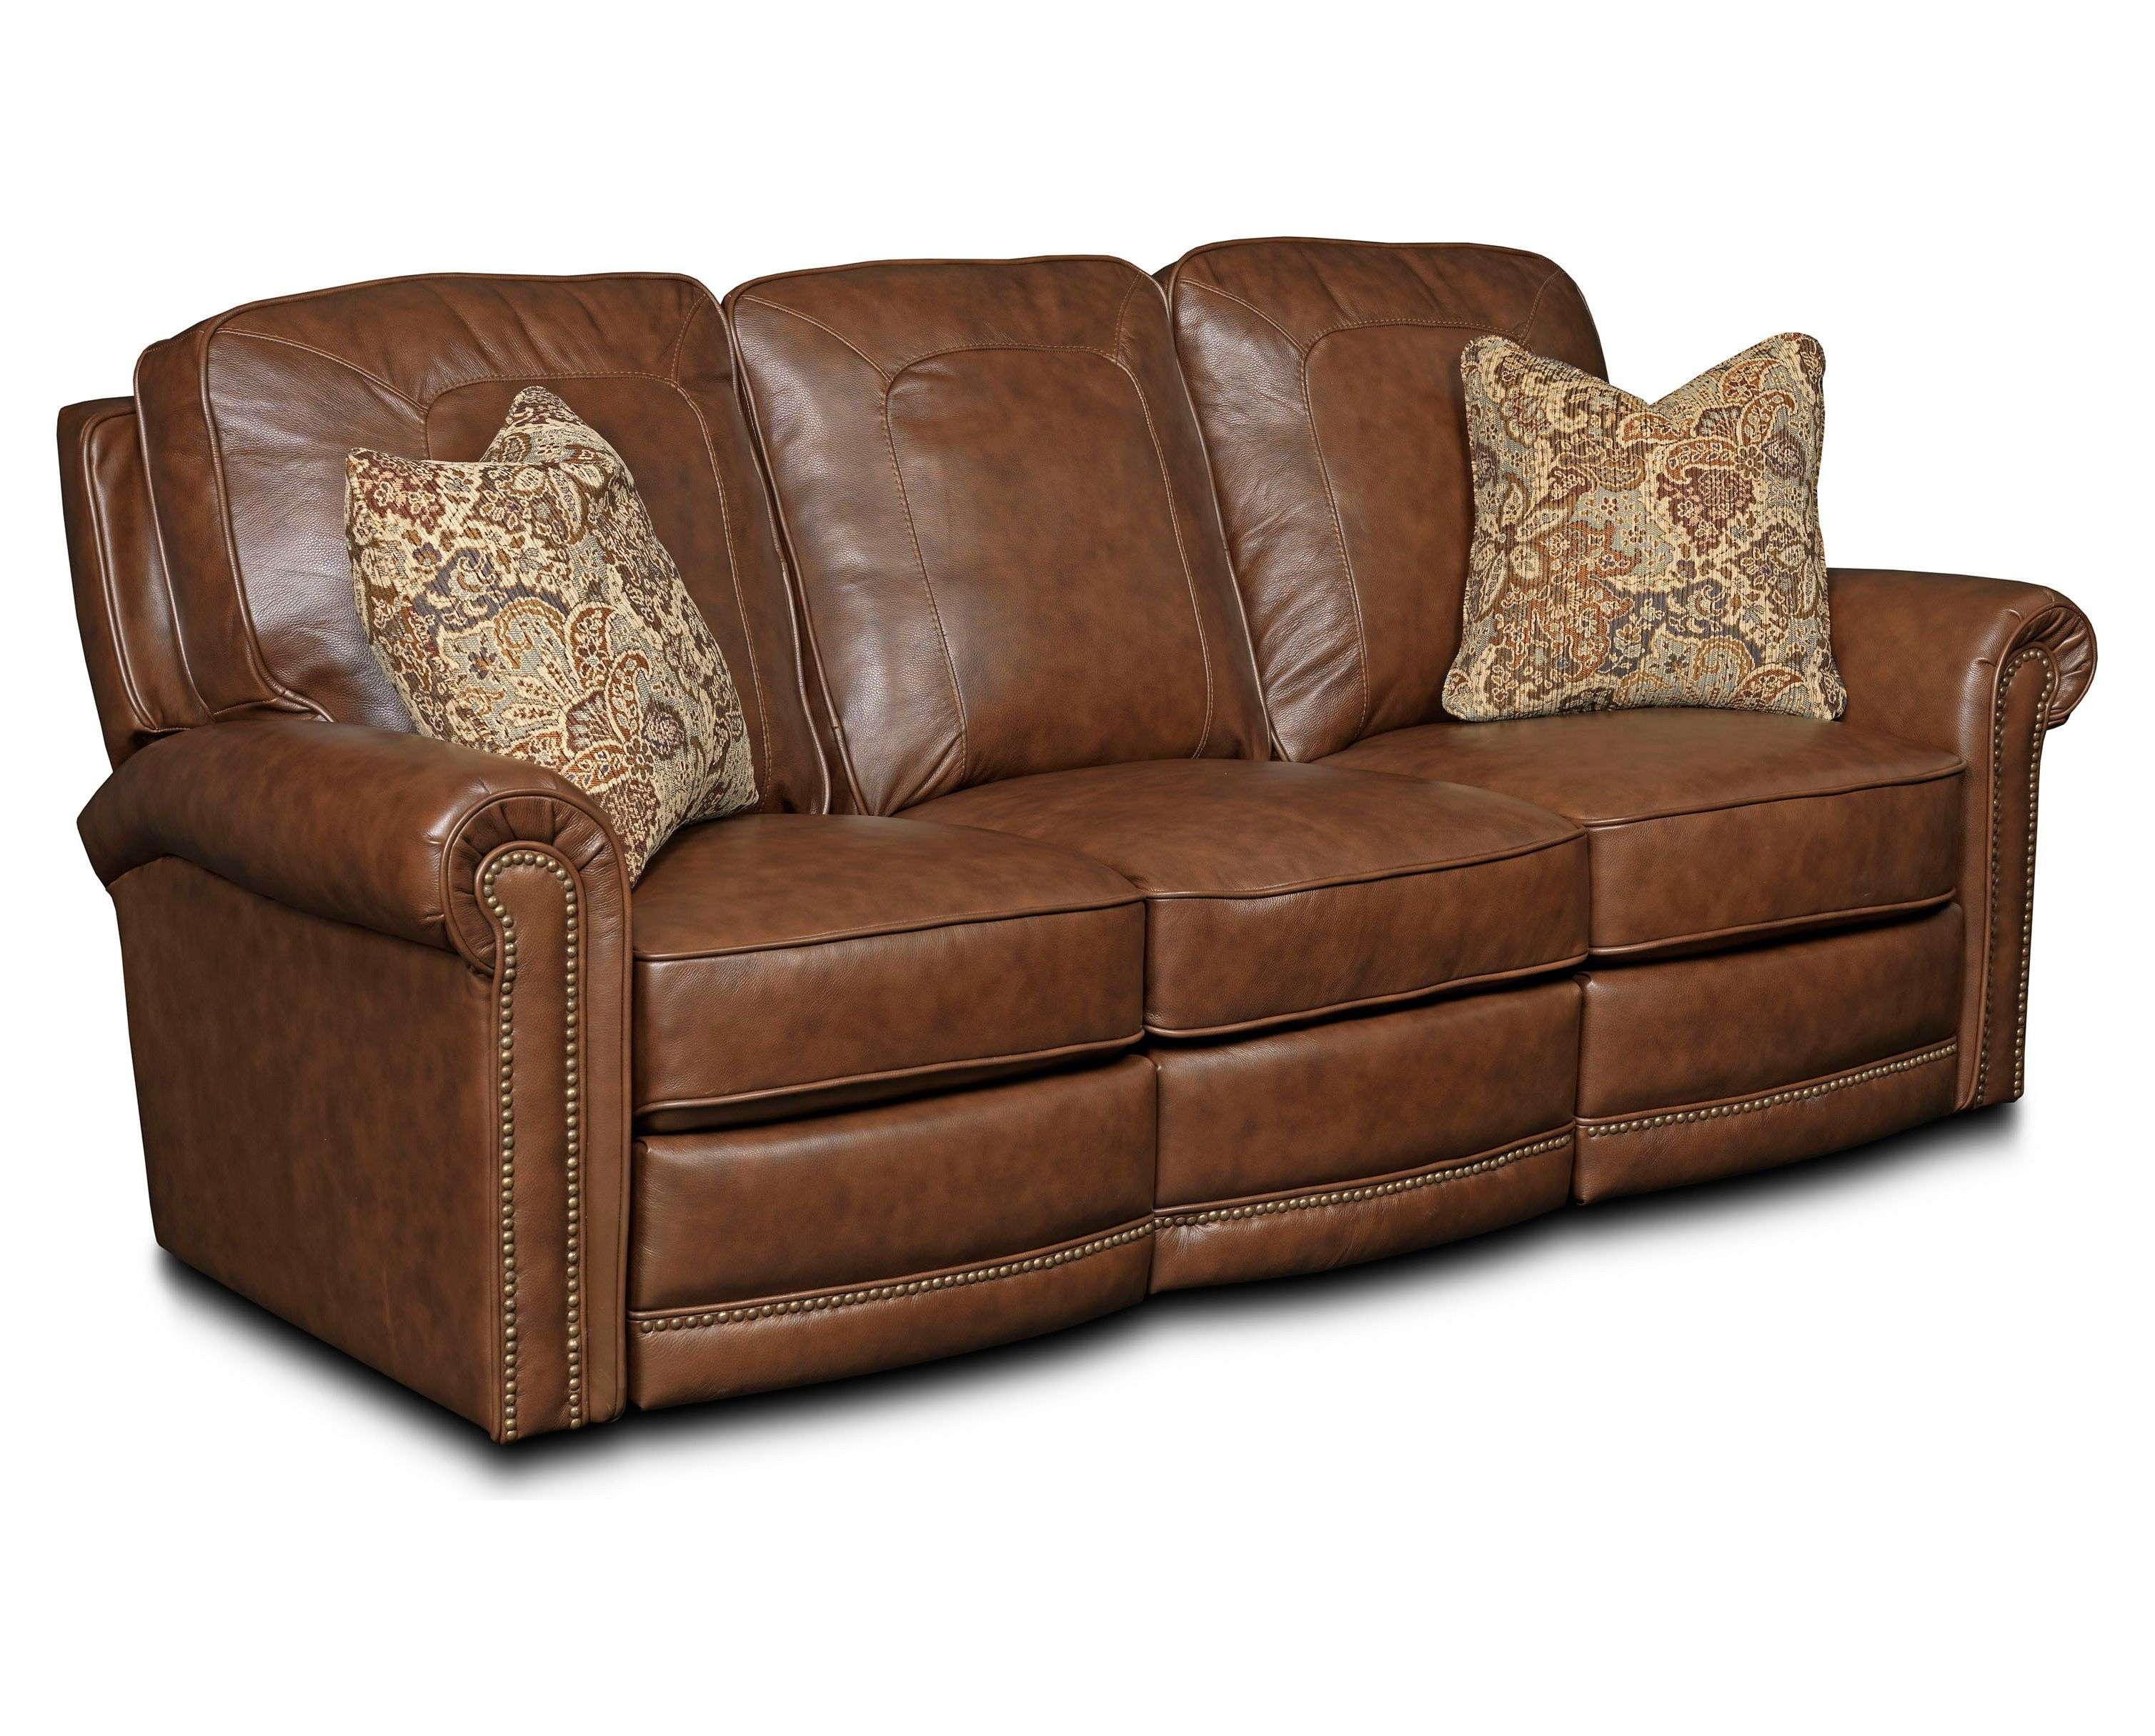 Jasmine LEATHER POWER Recliner Sofa